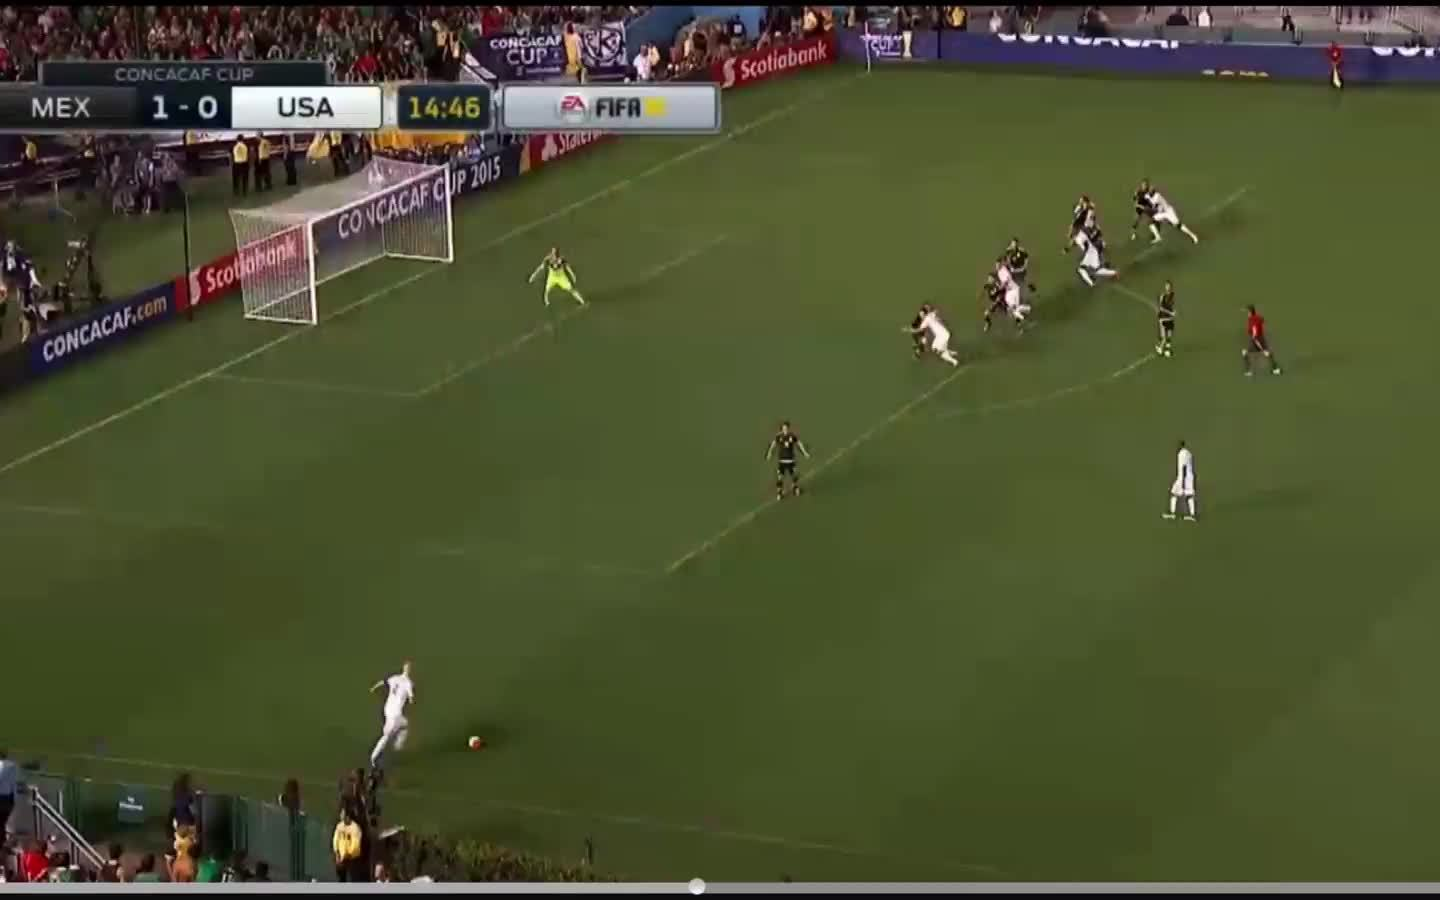 ussoccer,  GIFs